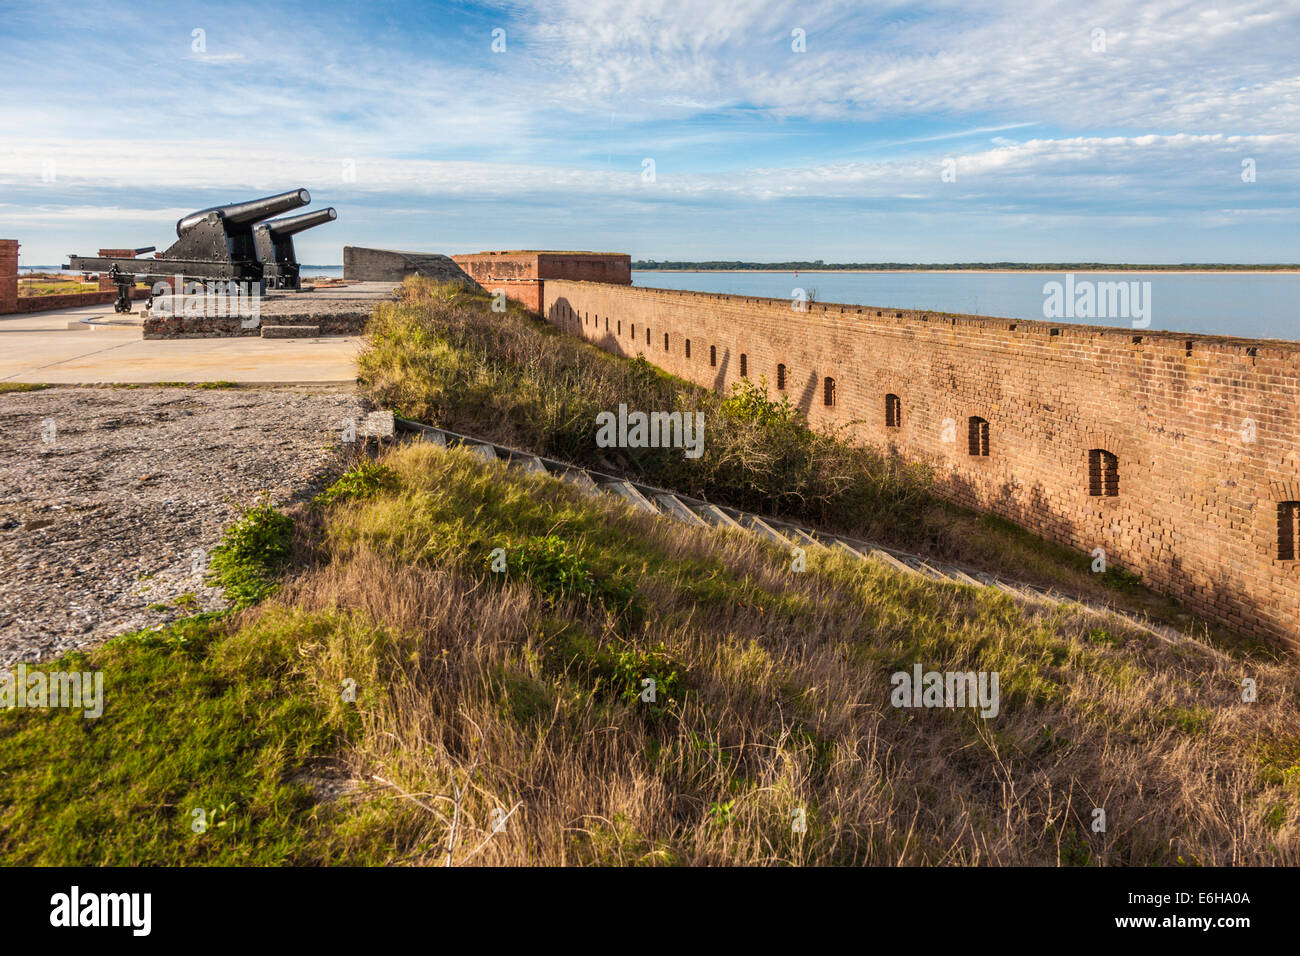 Exterior masonry walls and cannon at Fort Clinch in Fort Clinch State Park at Fernandina Beach, Florida - Stock Image